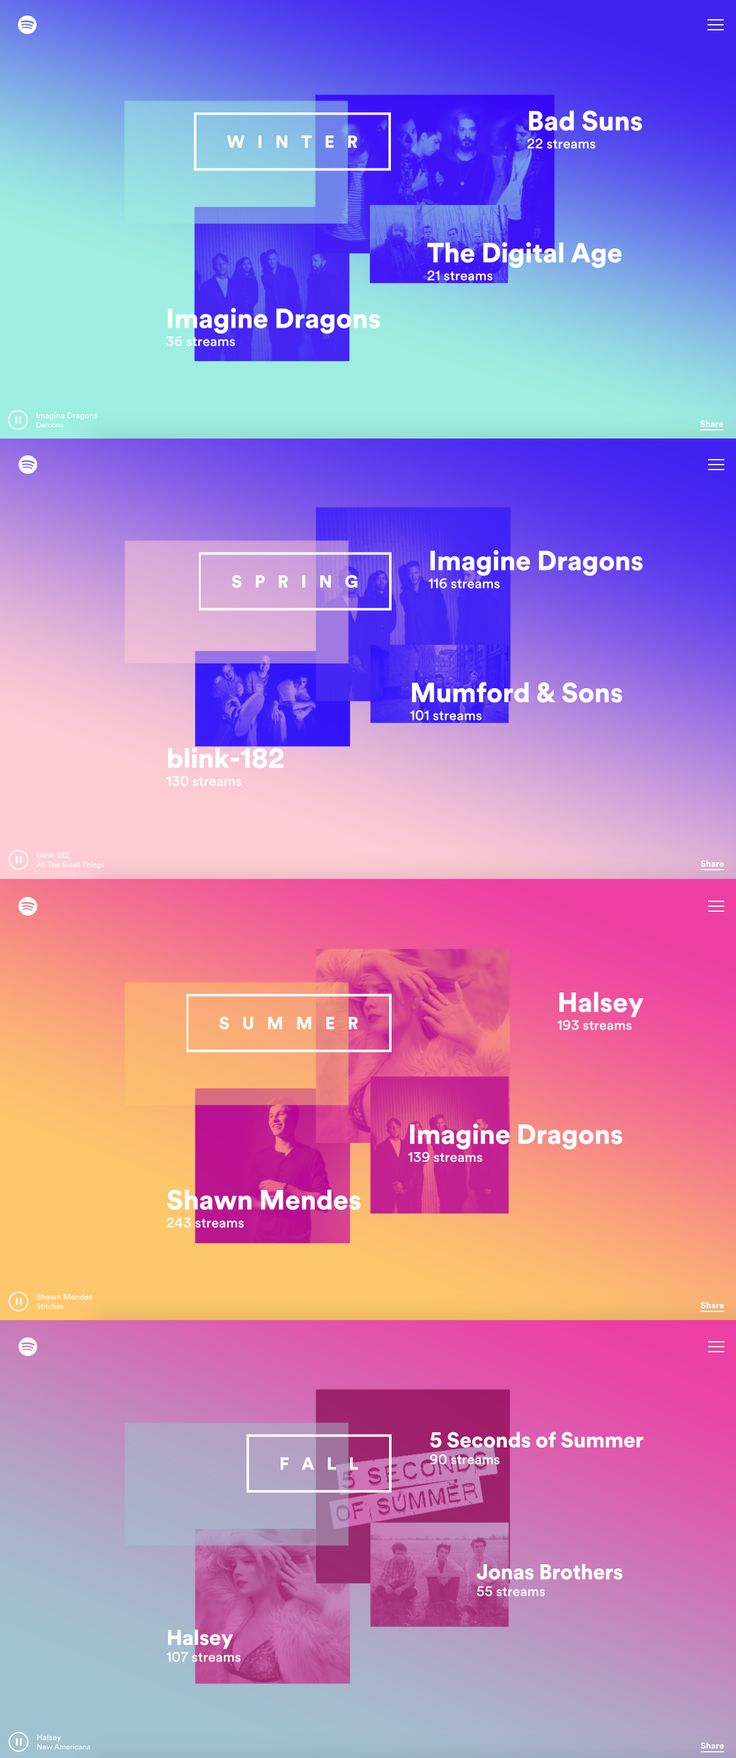 Spotify  |  My Year In Music 2015